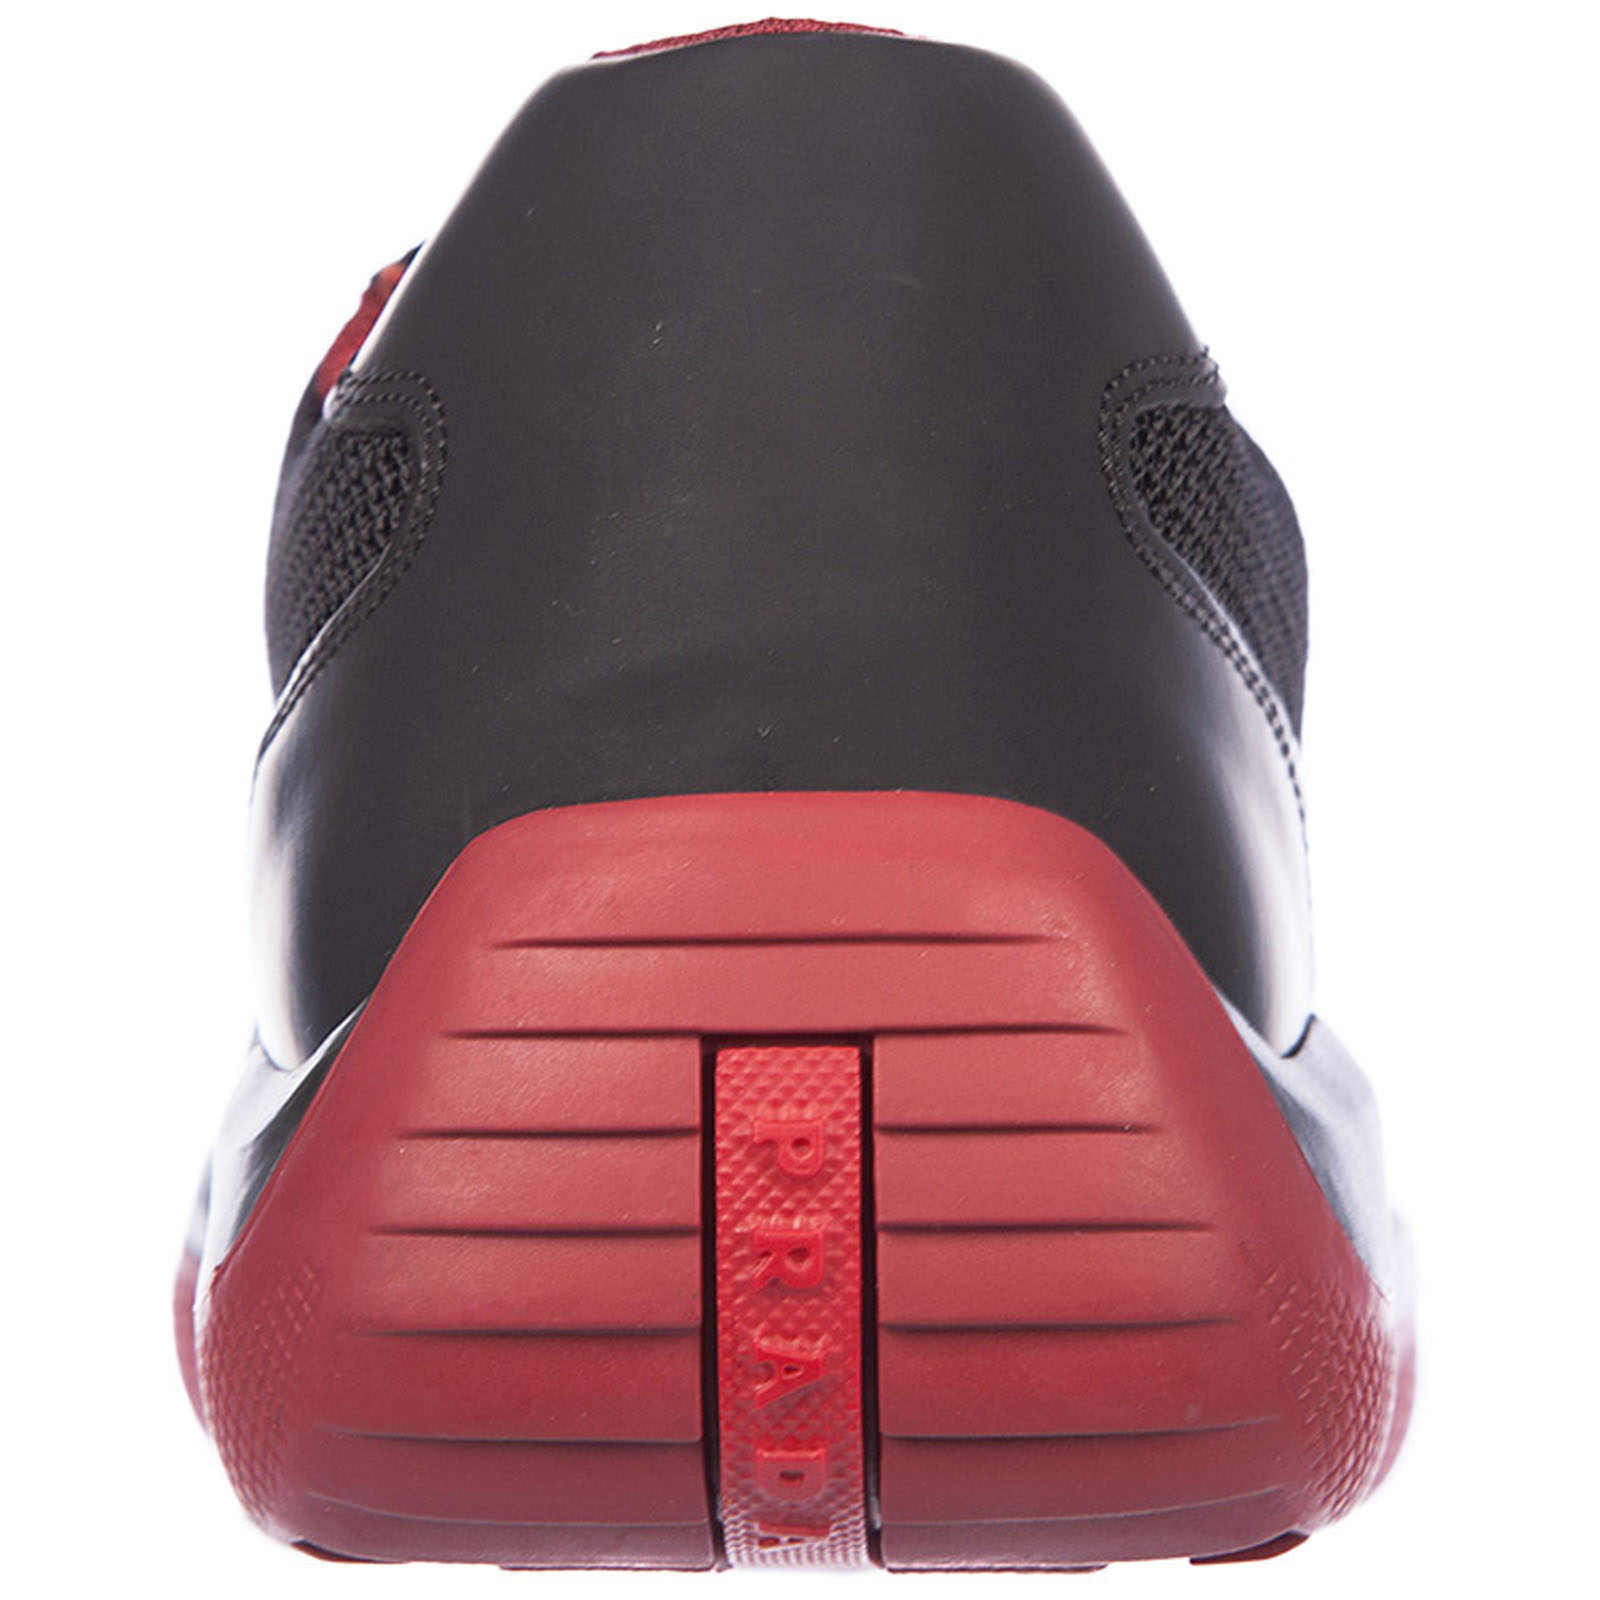 Men's shoes leather trainers sneakers vitello rubber bike